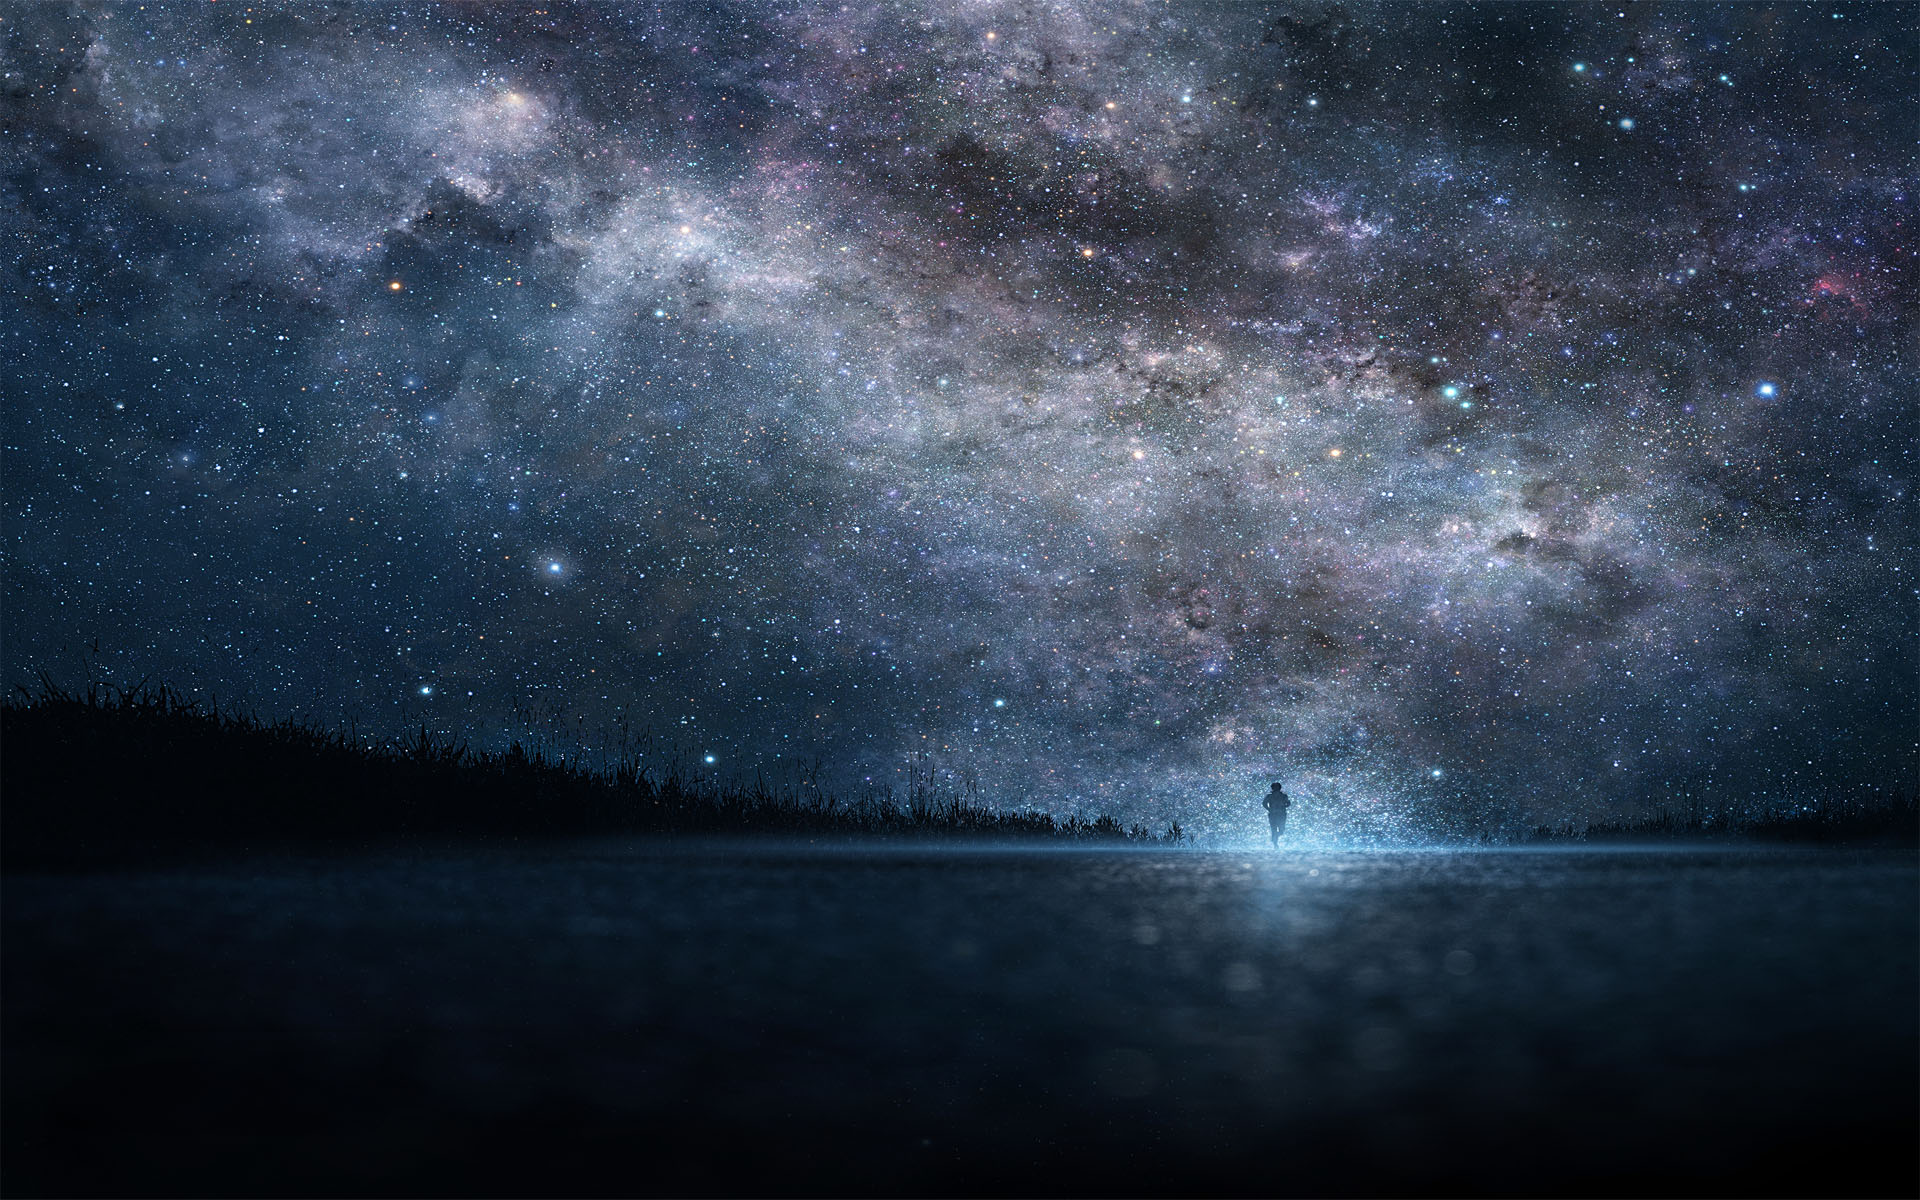 Starry Sky Photography Hd Wallpaper Hd Latest Wallpapers